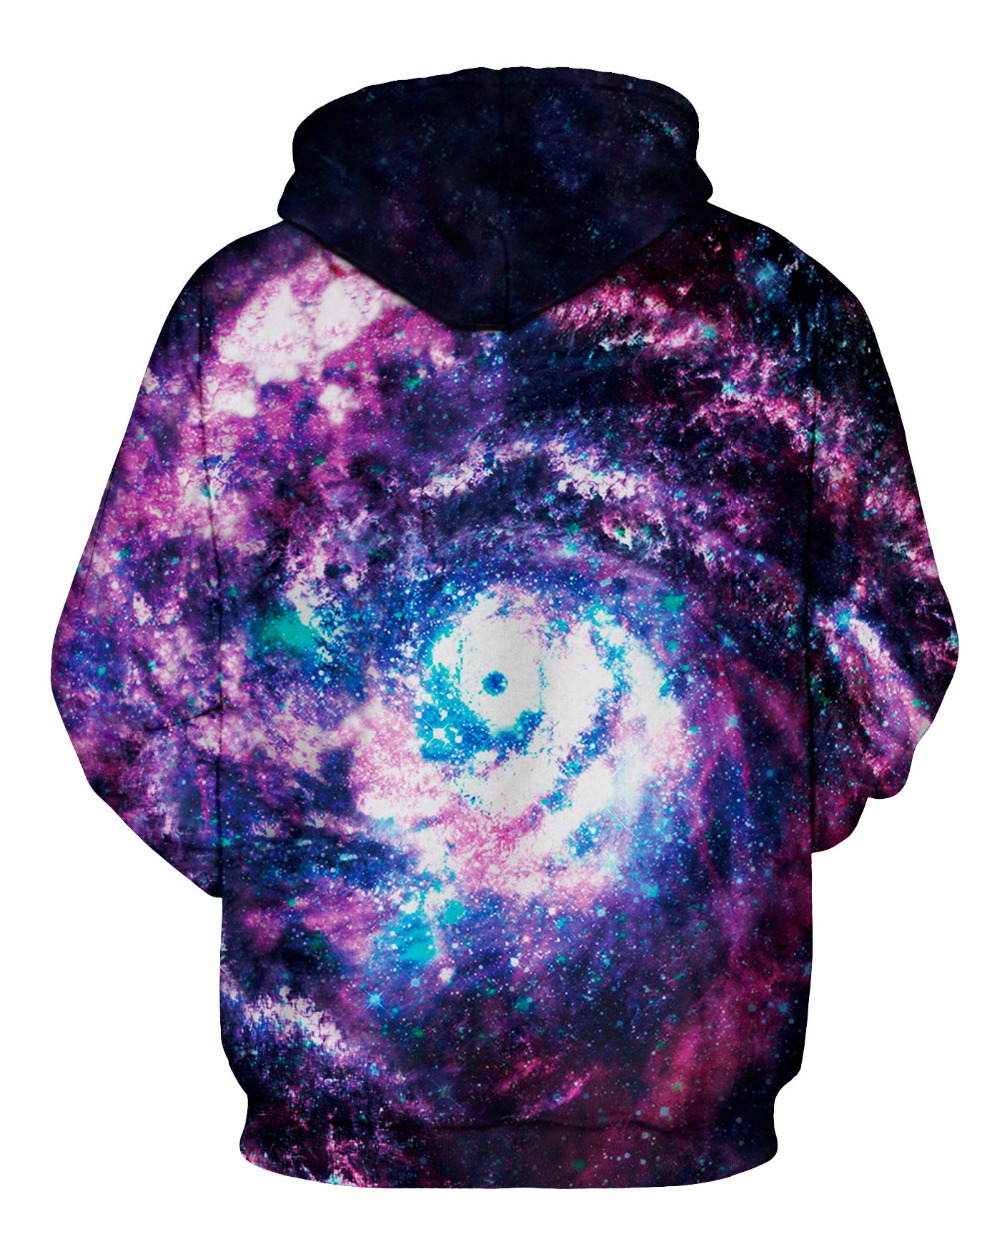 Mr.1991INC Space Star Sky Digital Print 3D Hoodies Sweatshirts Men Hooded Sweatshirt Europe America Hot Pullovers S-3XL M037